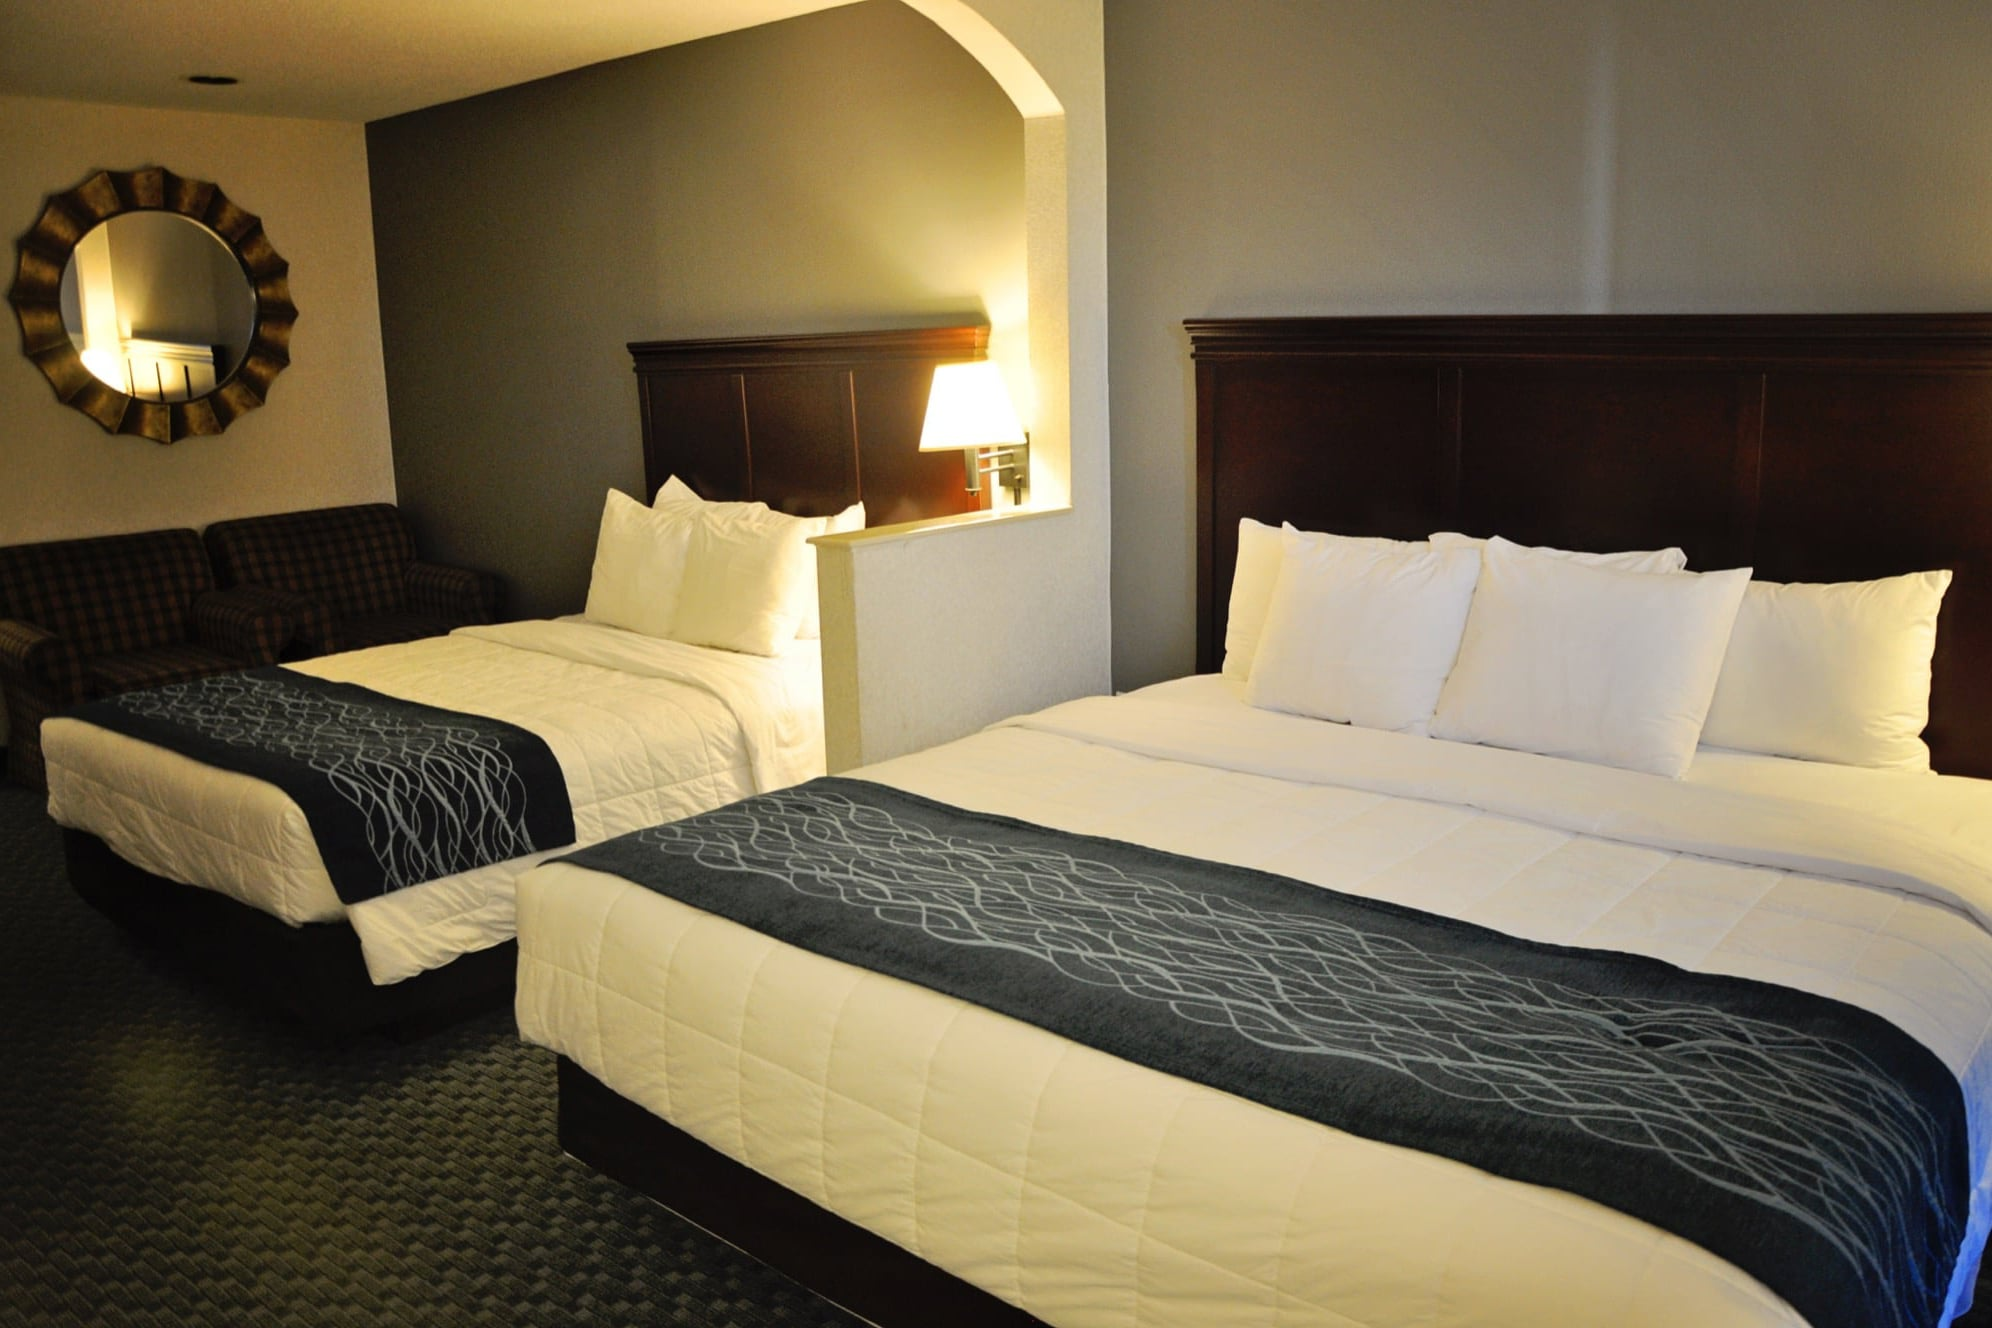 For a little added floor space we offer a room with 1 queen bed and 1 king bed. It comes with a refrigerator